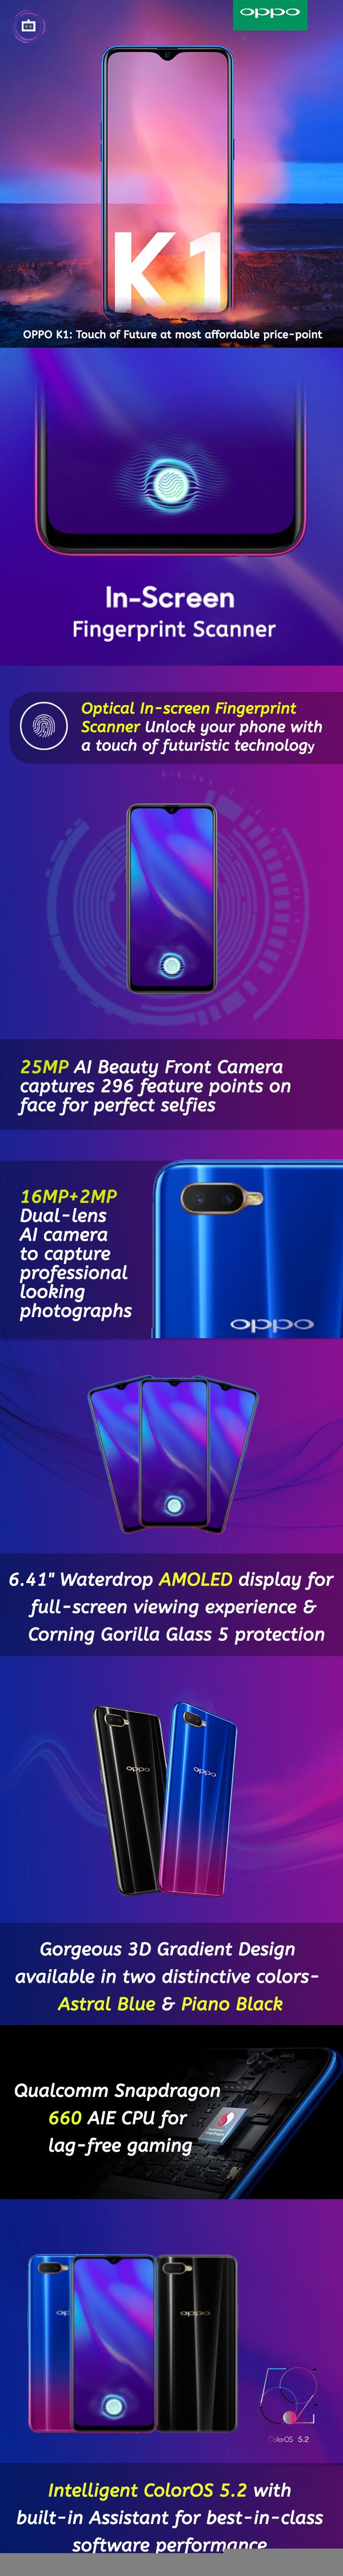 OPPO K1: Touch of Future at most unbelievable price-point